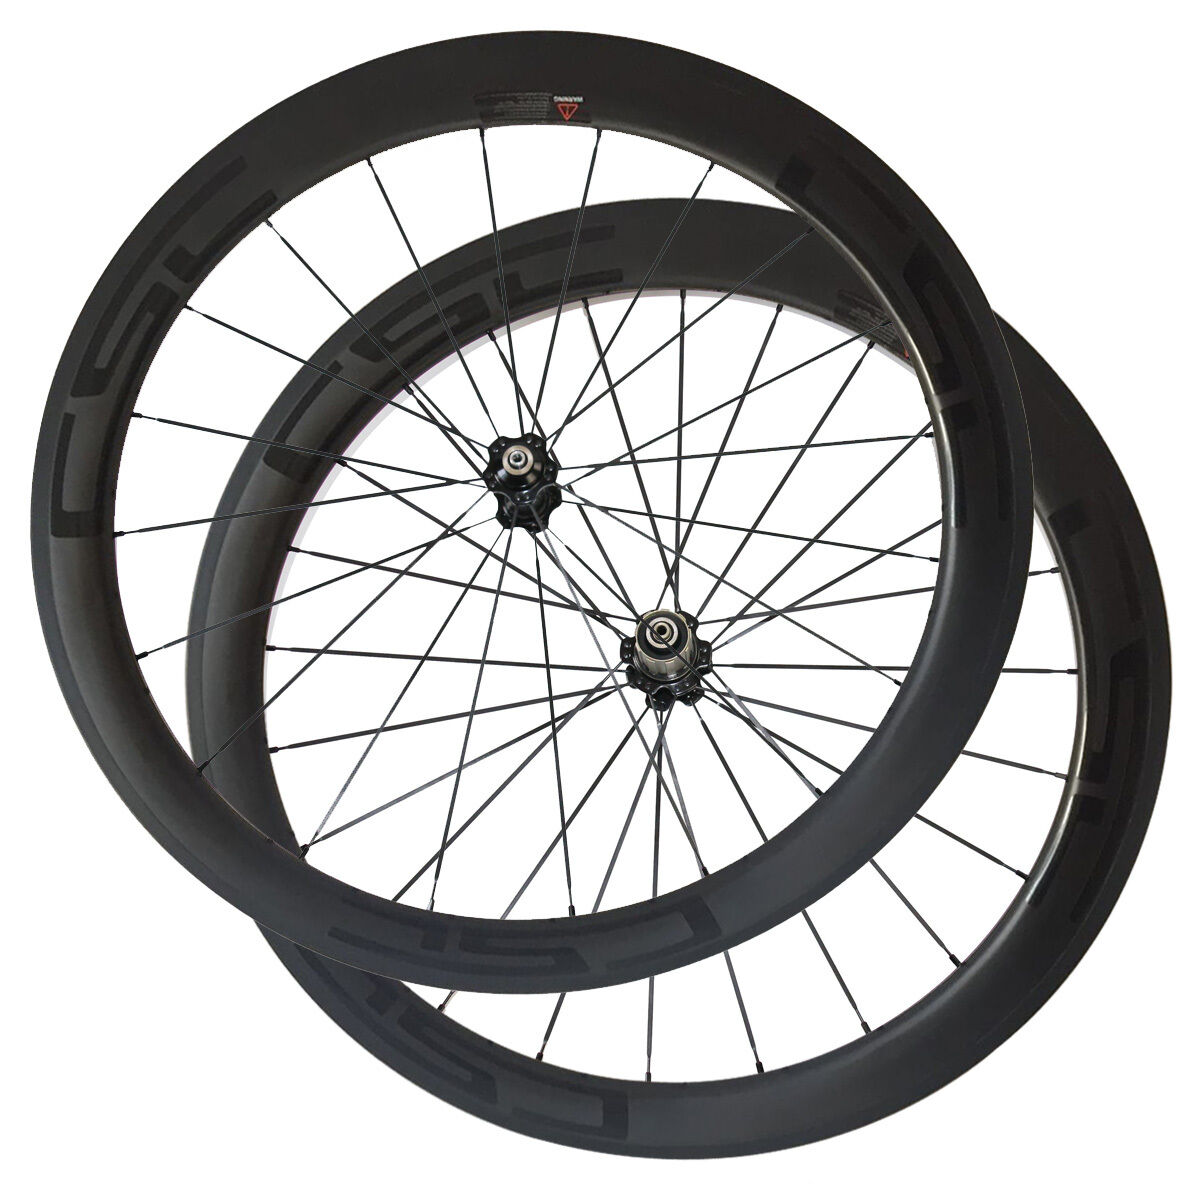 CSC carbon wheels 50mm Tubular carbon Bicycle road wheelset  23 25mm wide